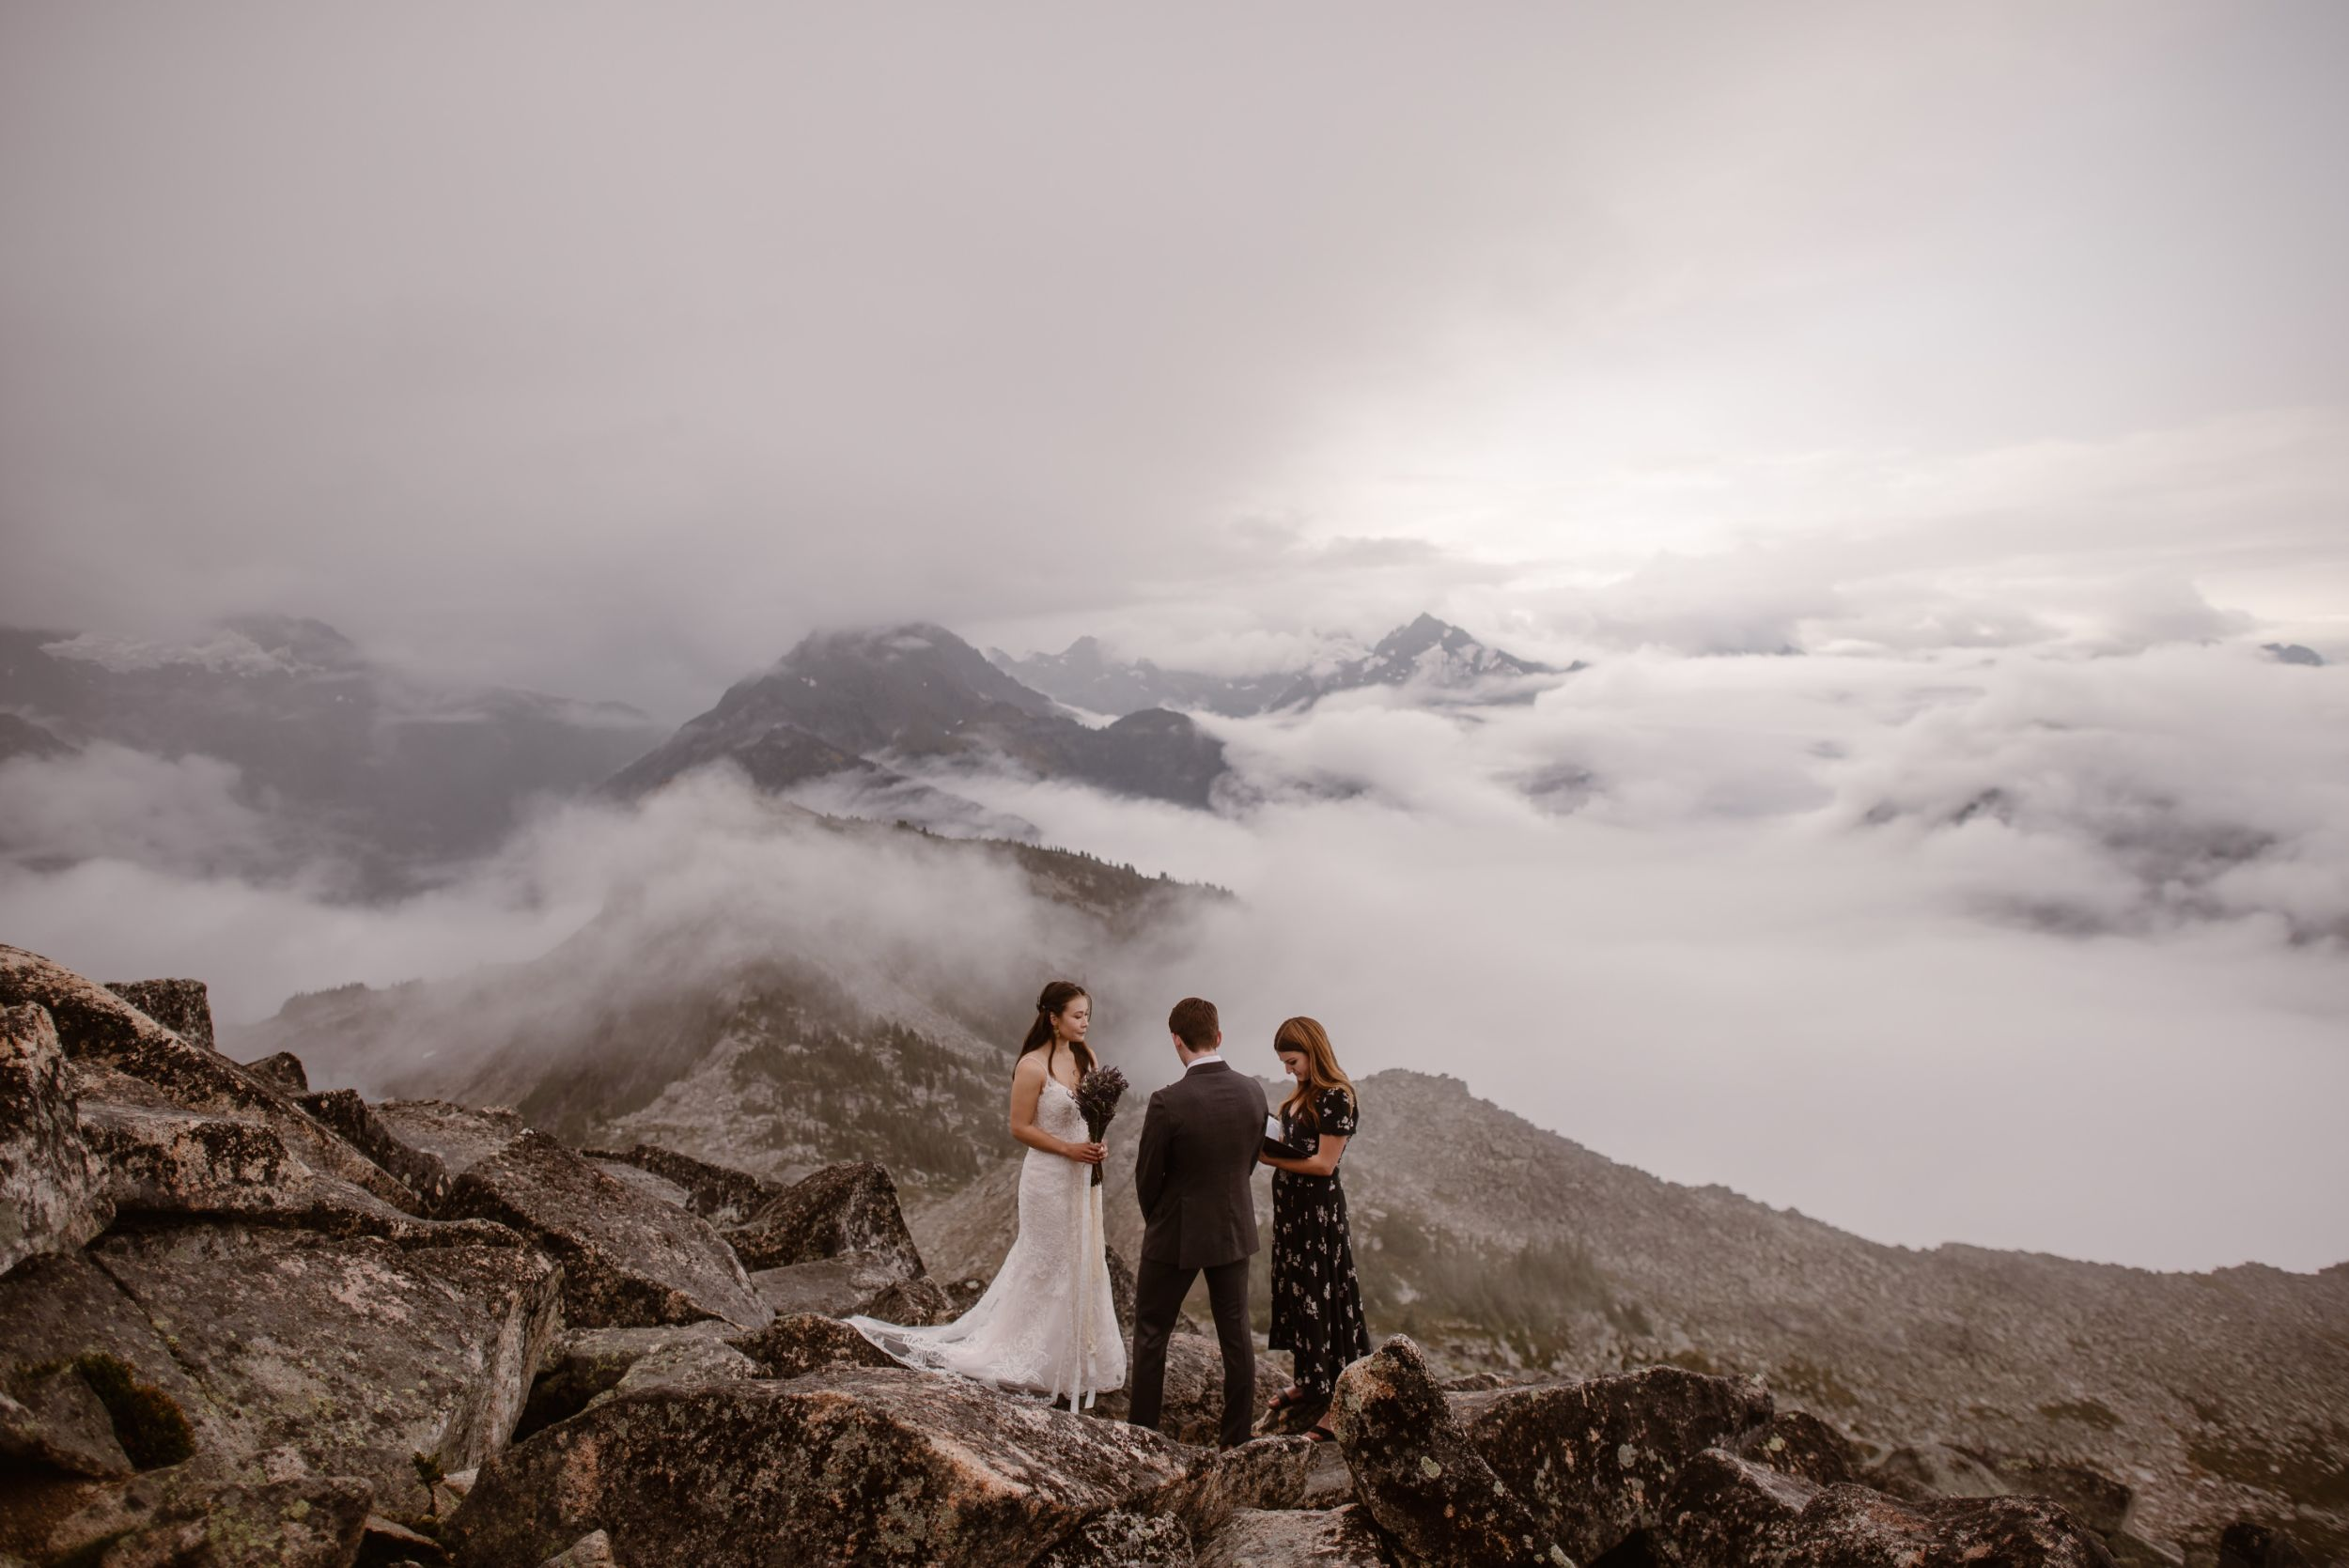 A bride and groom have a wedding ceremony with their officiant by their side. They are surrounded by cloud inversions.